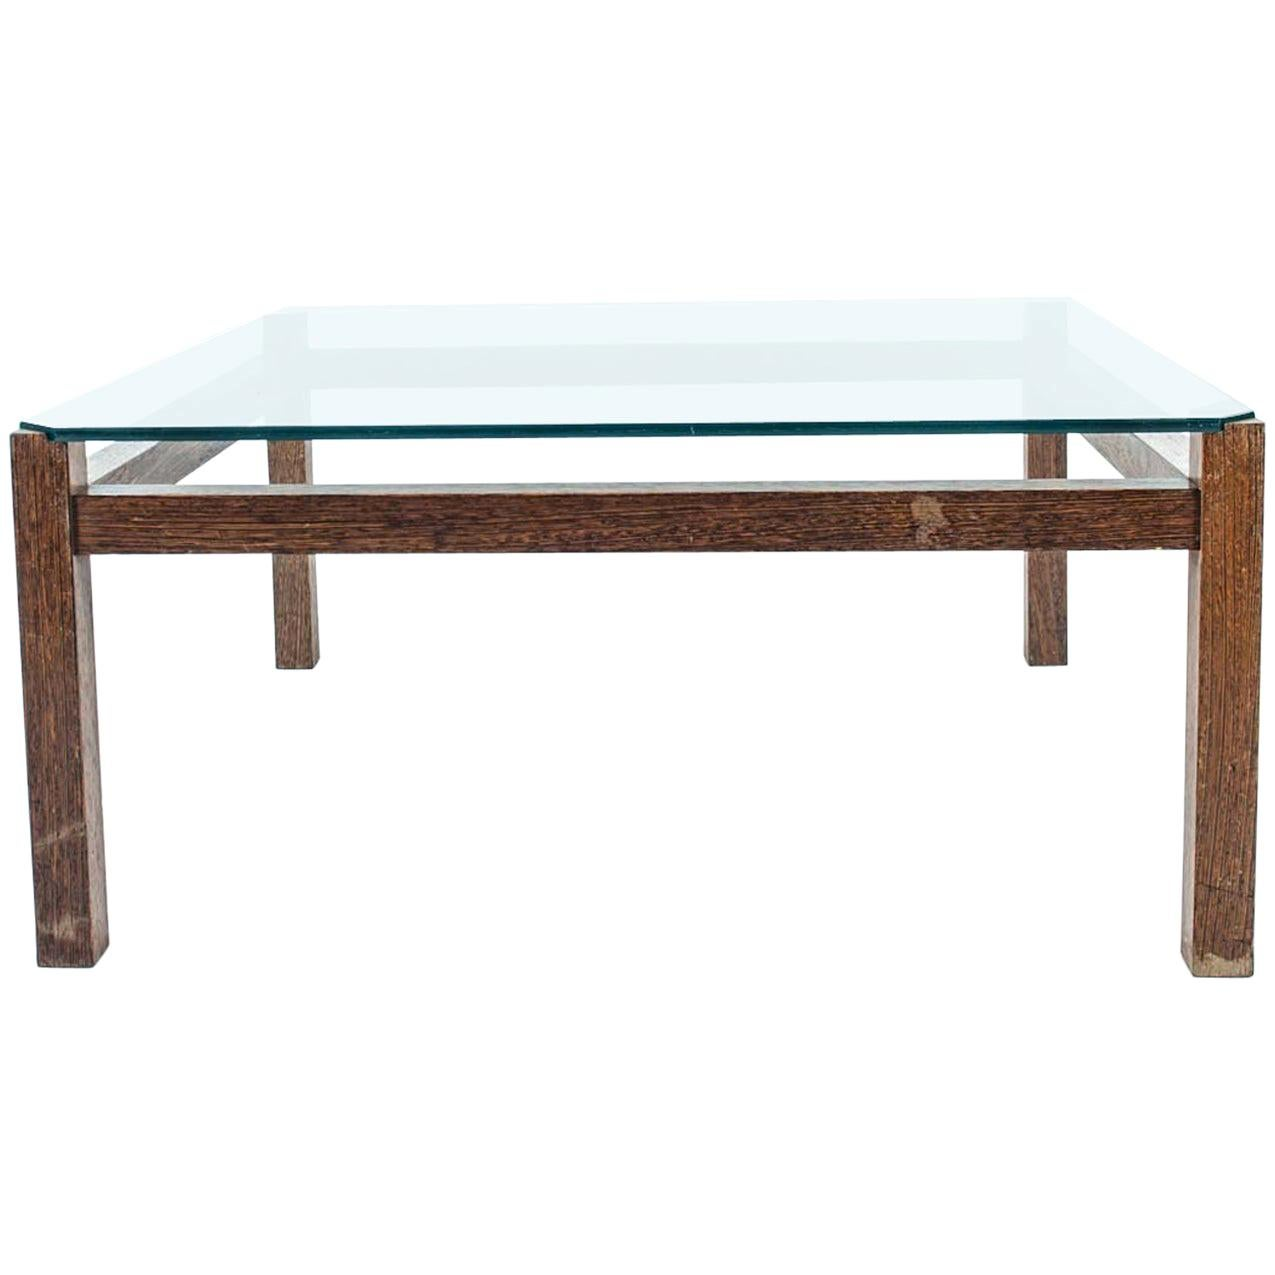 Midcentury Wenge Coffee Table with Glass Top by Kho Liang Ie for Artifort